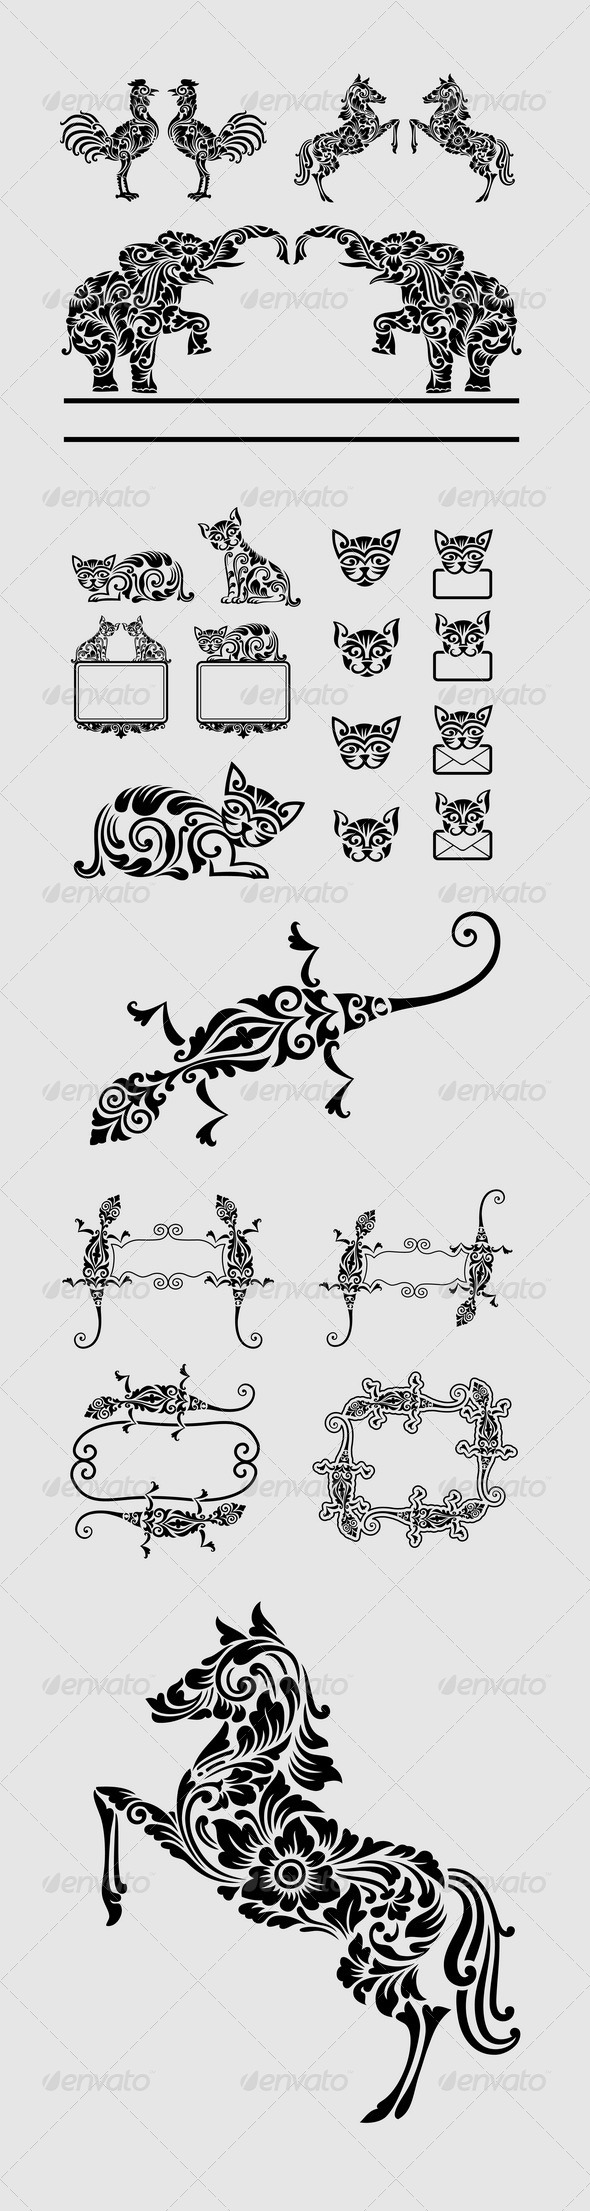 Animal Floral Ornament Decorations